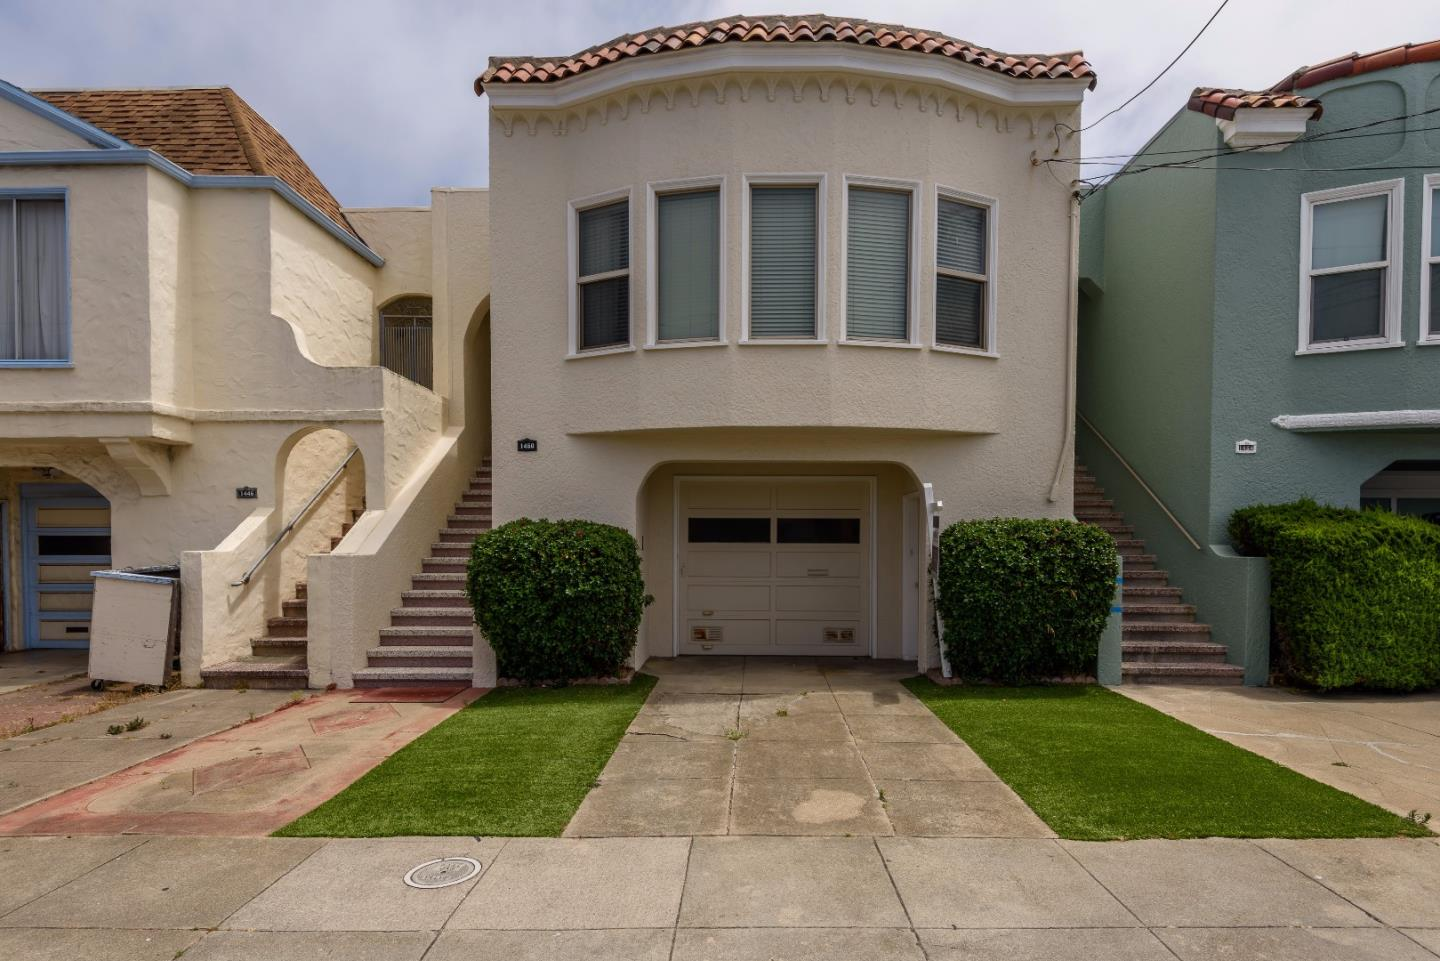 1450 39th Avenue, SAN FRANCISCO, CA 94122